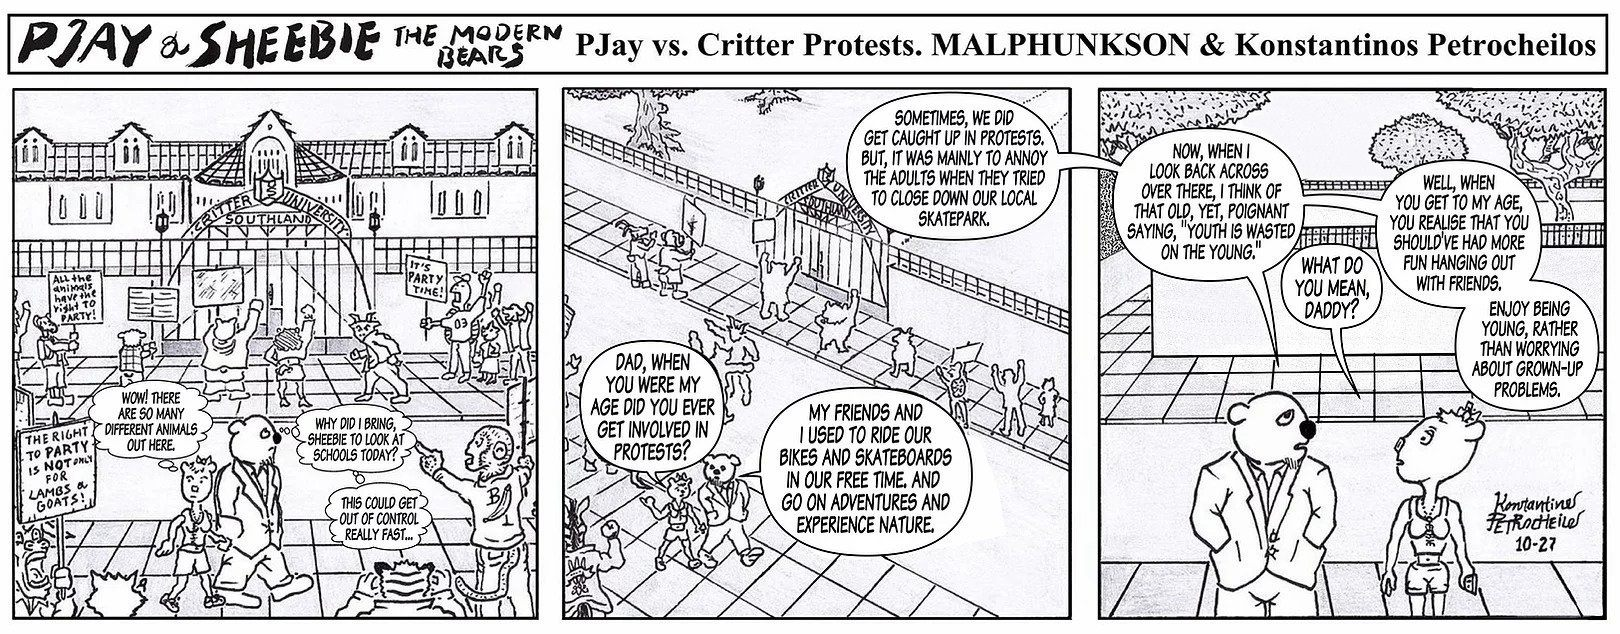 Pjay vs. Critter Protests